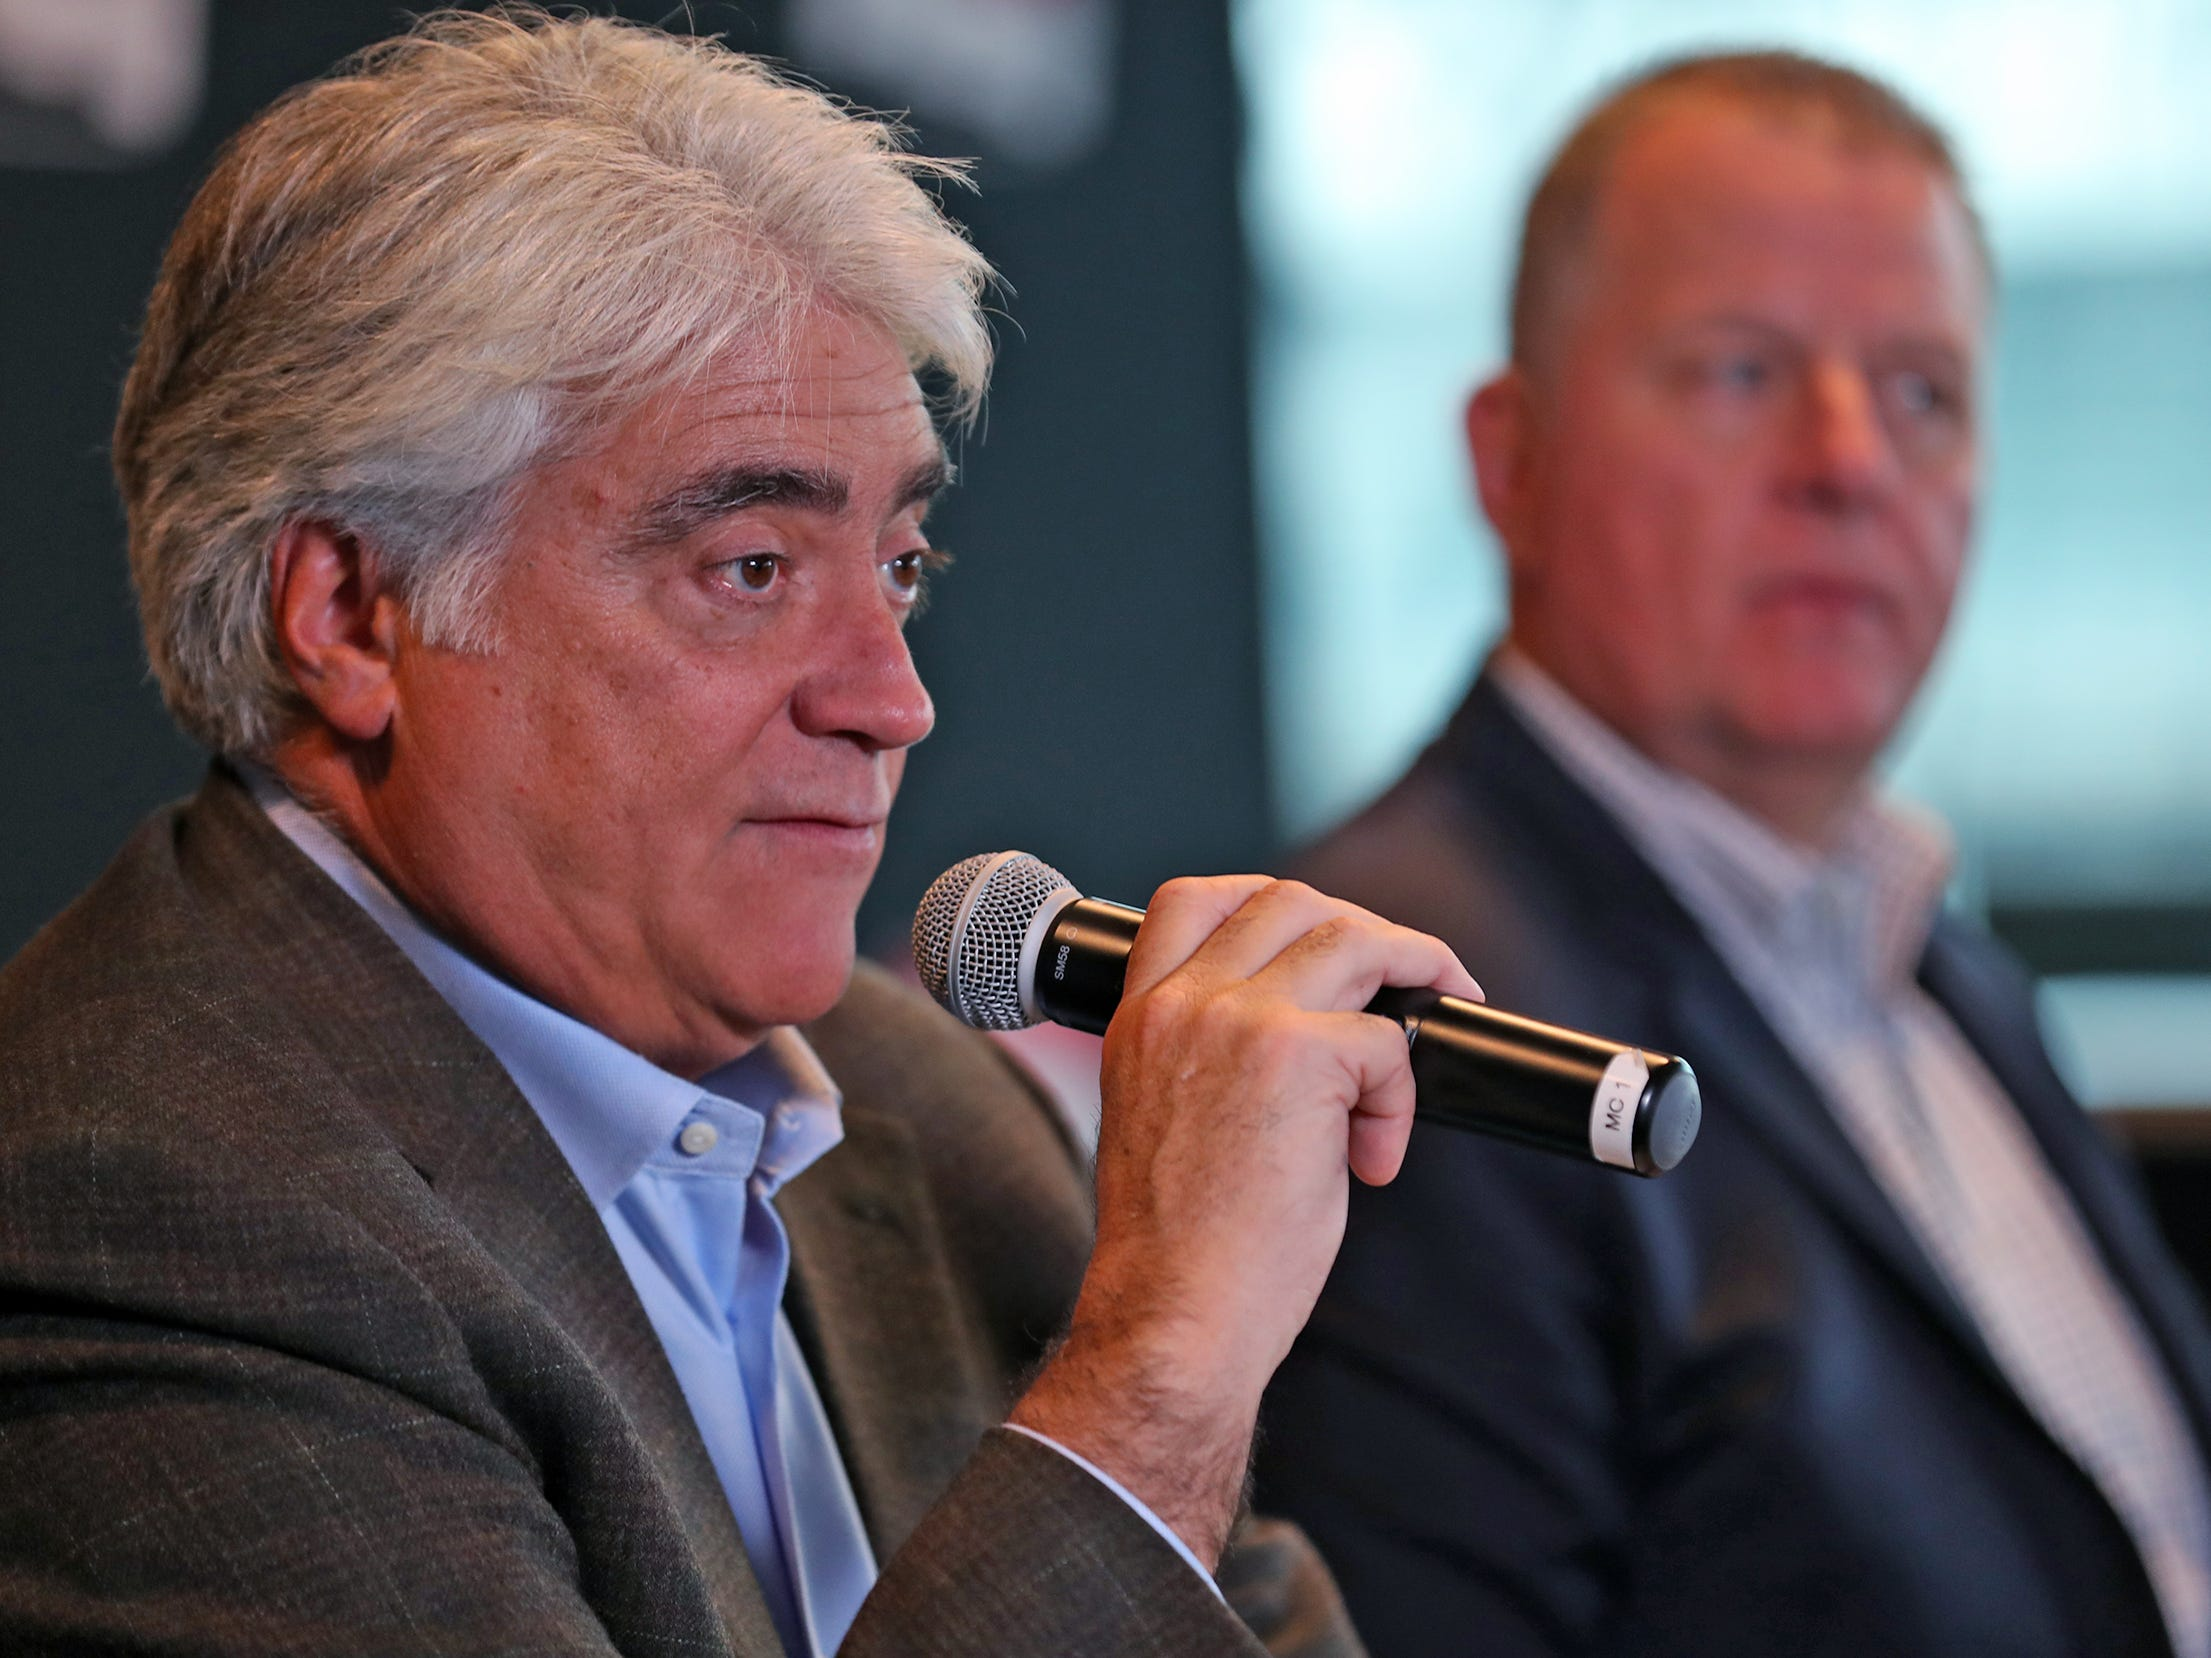 Hulman & Company CEO Mark Miles speaks about the upcoming IndyCar season during a press conference on the IndyCar announcement of their TV schedule, during a press conference at Indianapolis Motor Speedway, Wednesday, Jan. 9, 2019.